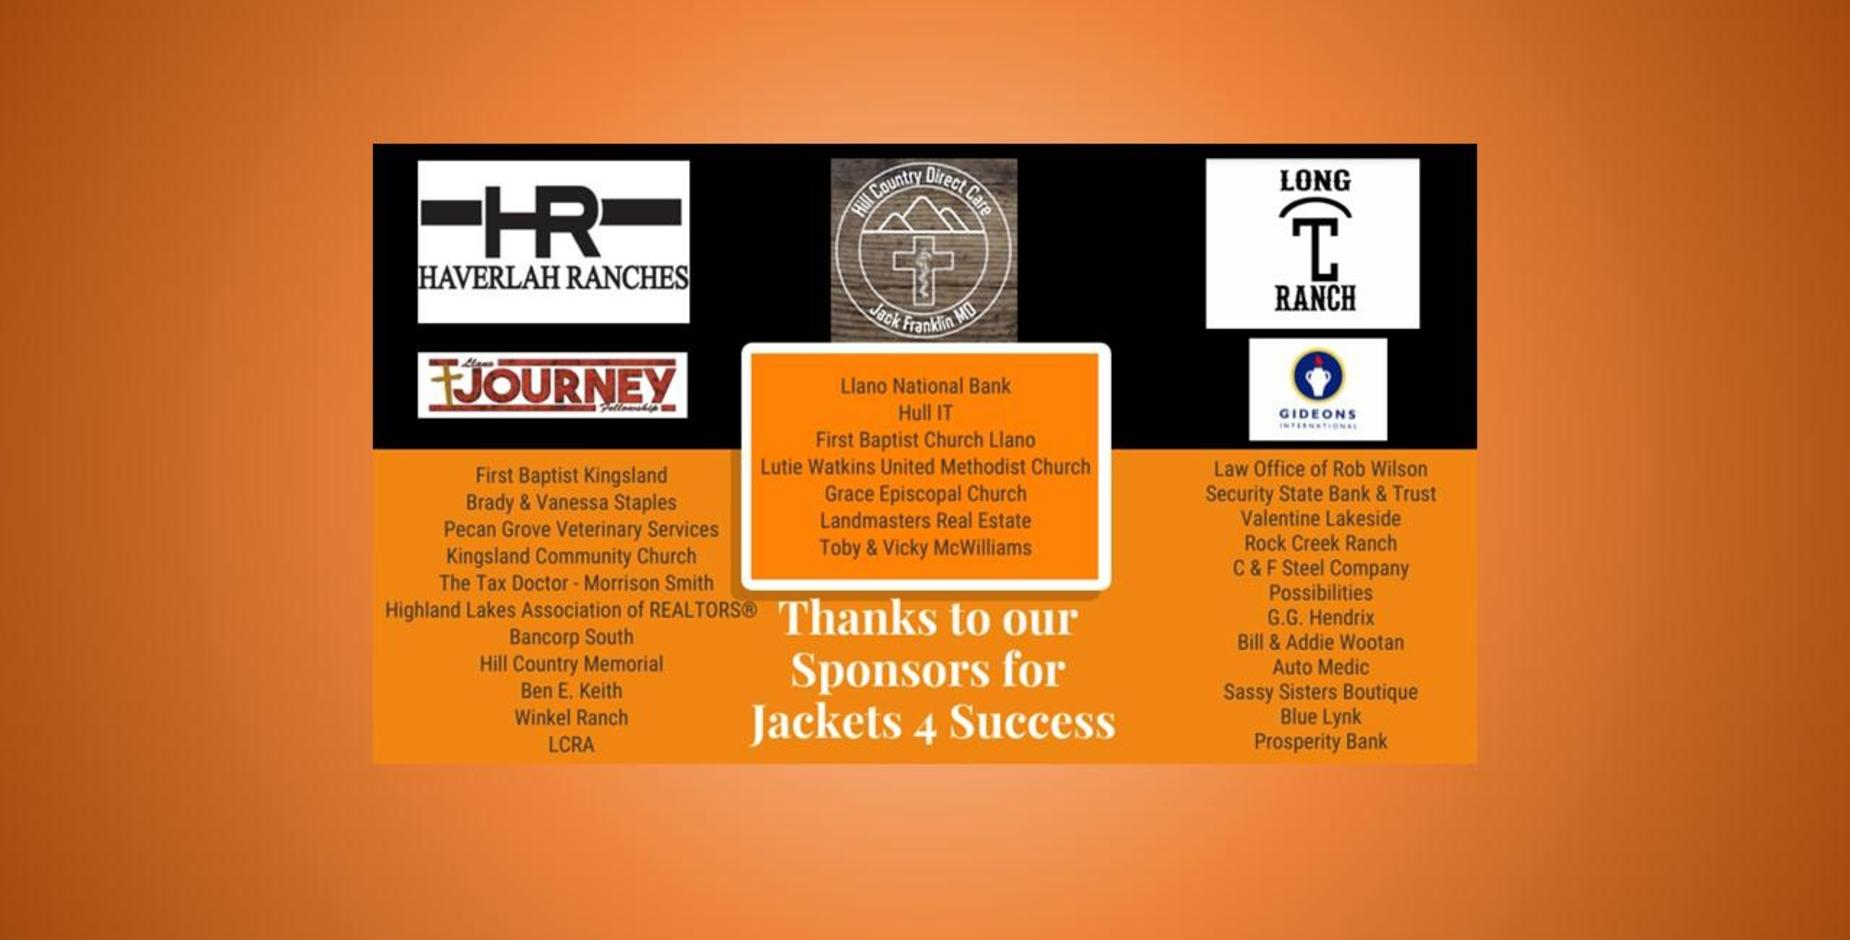 Thank you Jackets 4 Success Sponsors